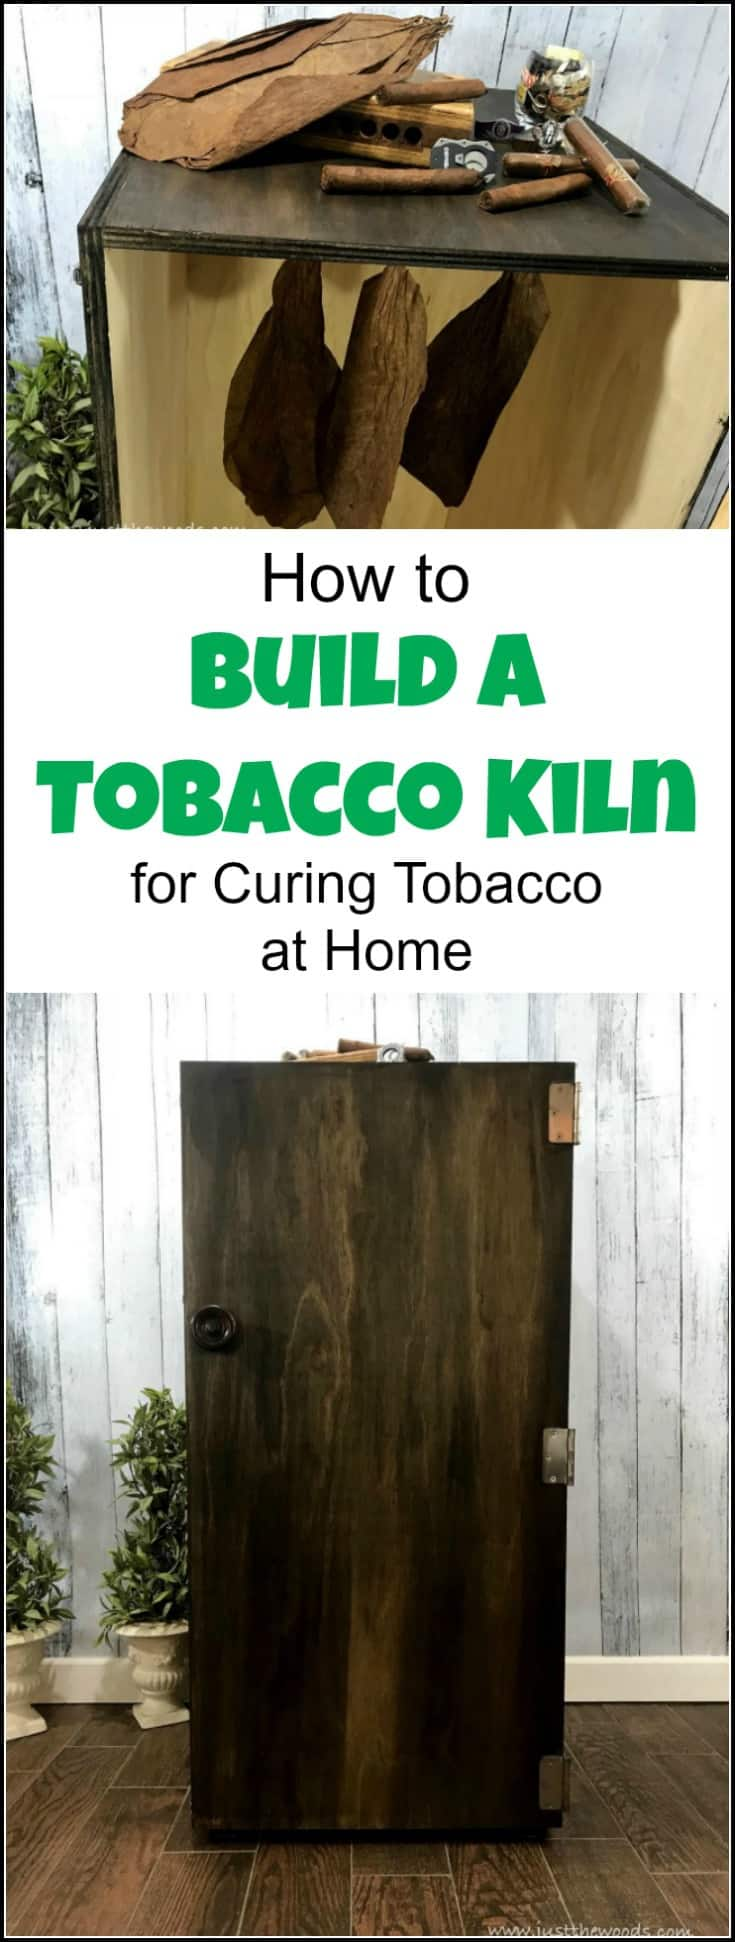 How To Build A Tobacco Kiln For Curing Tobacco At Home